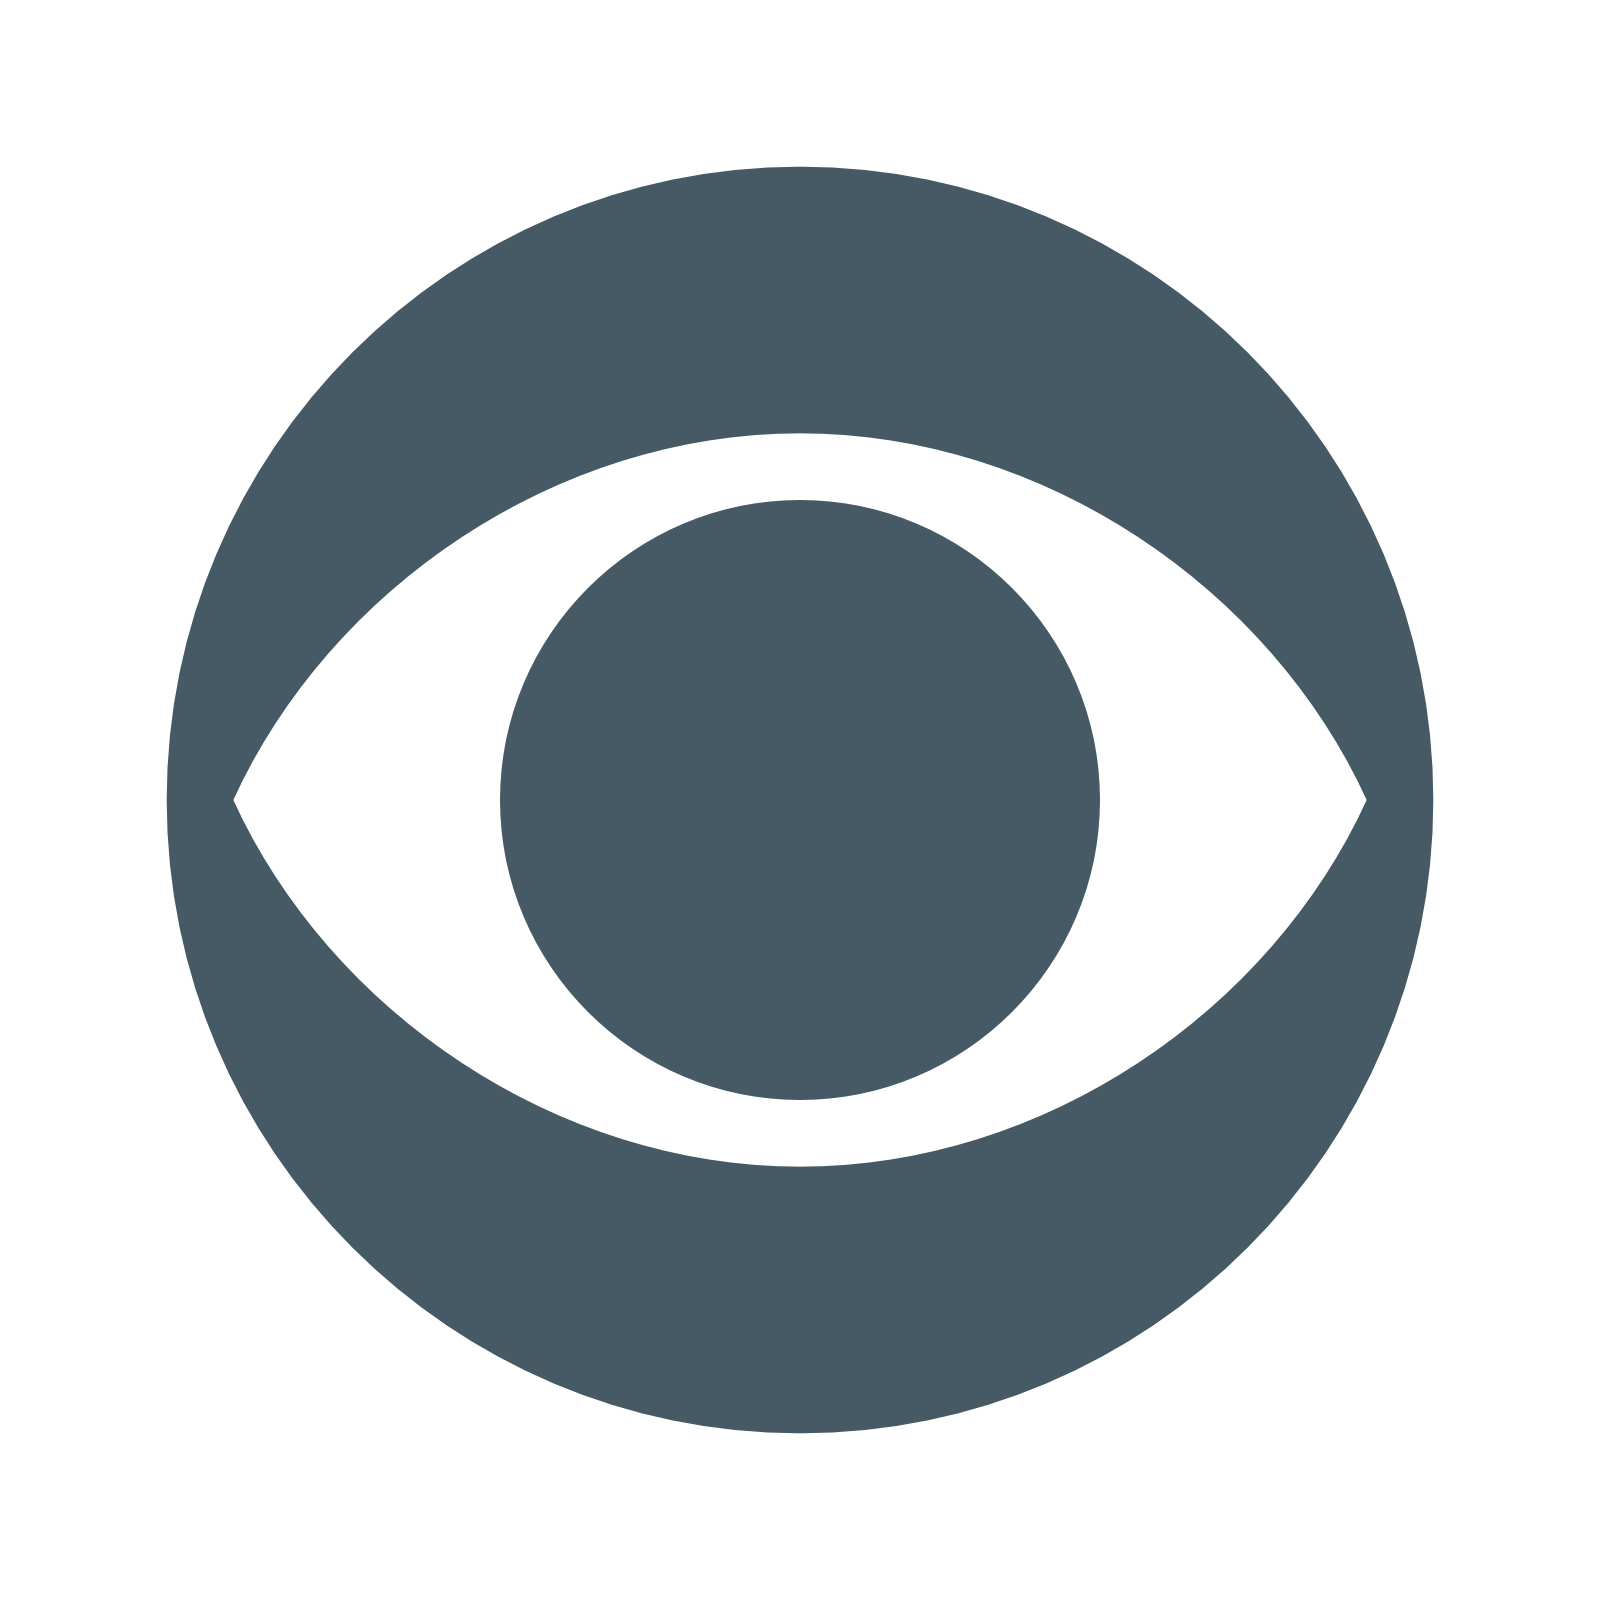 cbs icon eye png logo #4906